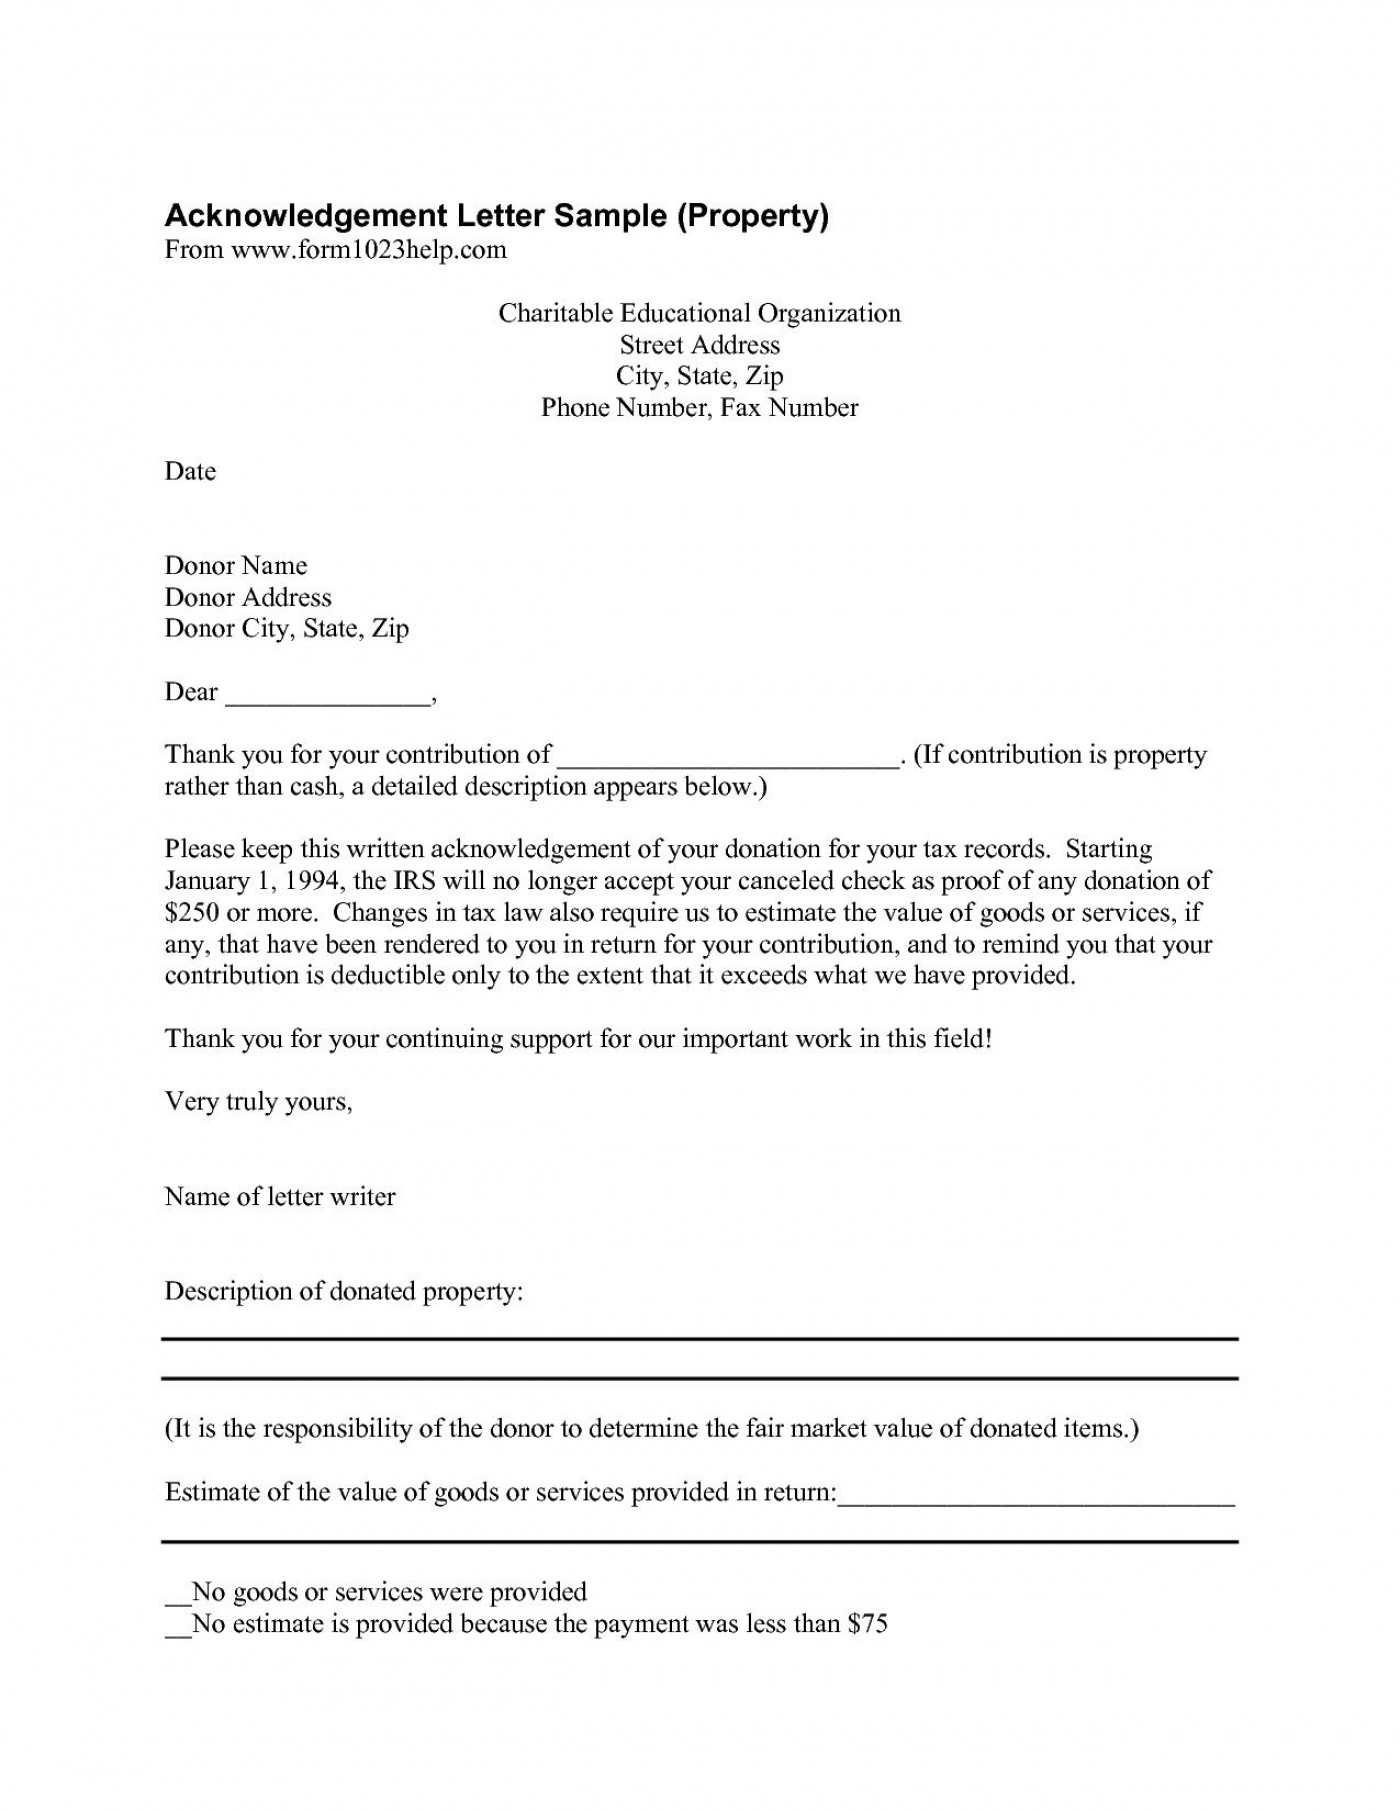 001 Wonderful Fund Raising Letter Template Photo  Fundraising For Mission Trip School Sample Of A Nonprofit Organization1400